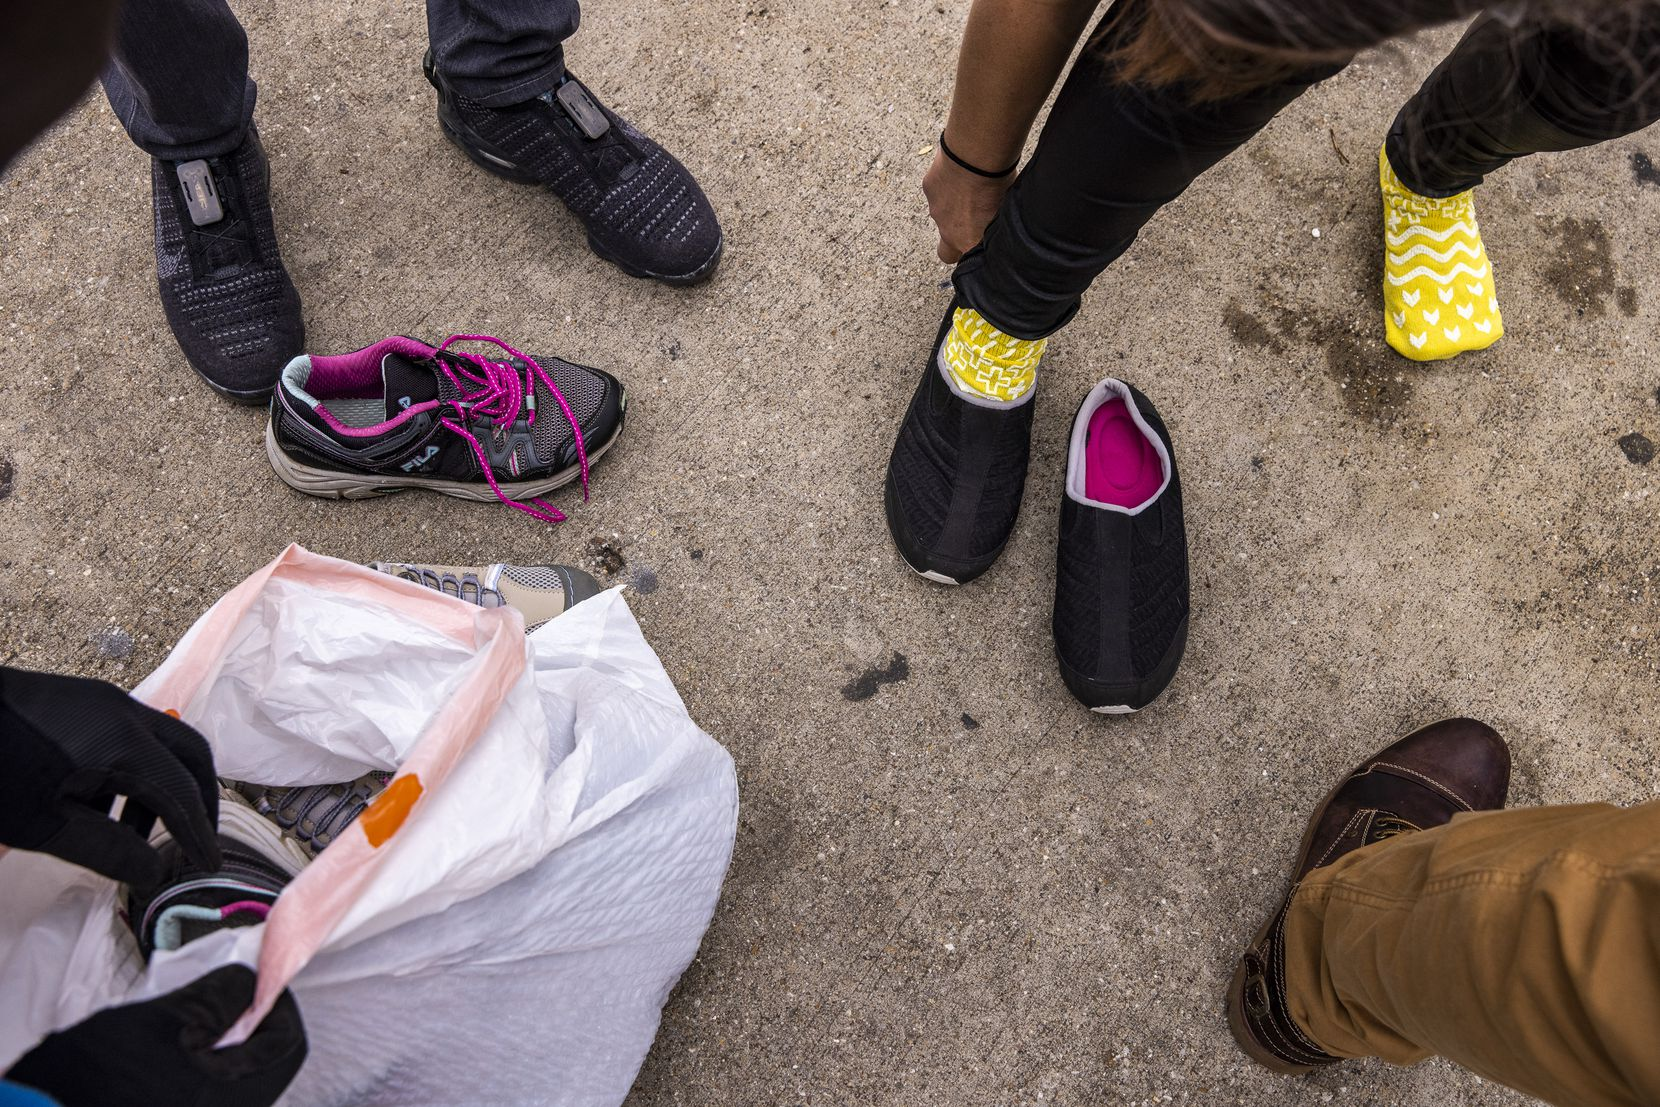 The Downtown Dallas, Inc. homeless outreach team provided shoes to an unhoused woman, whose only footwear was a pair of hospital-issued socks. The team, which works six days a week in downtown Dallas, then took the woman to OurCalling, where they could assess her needs.